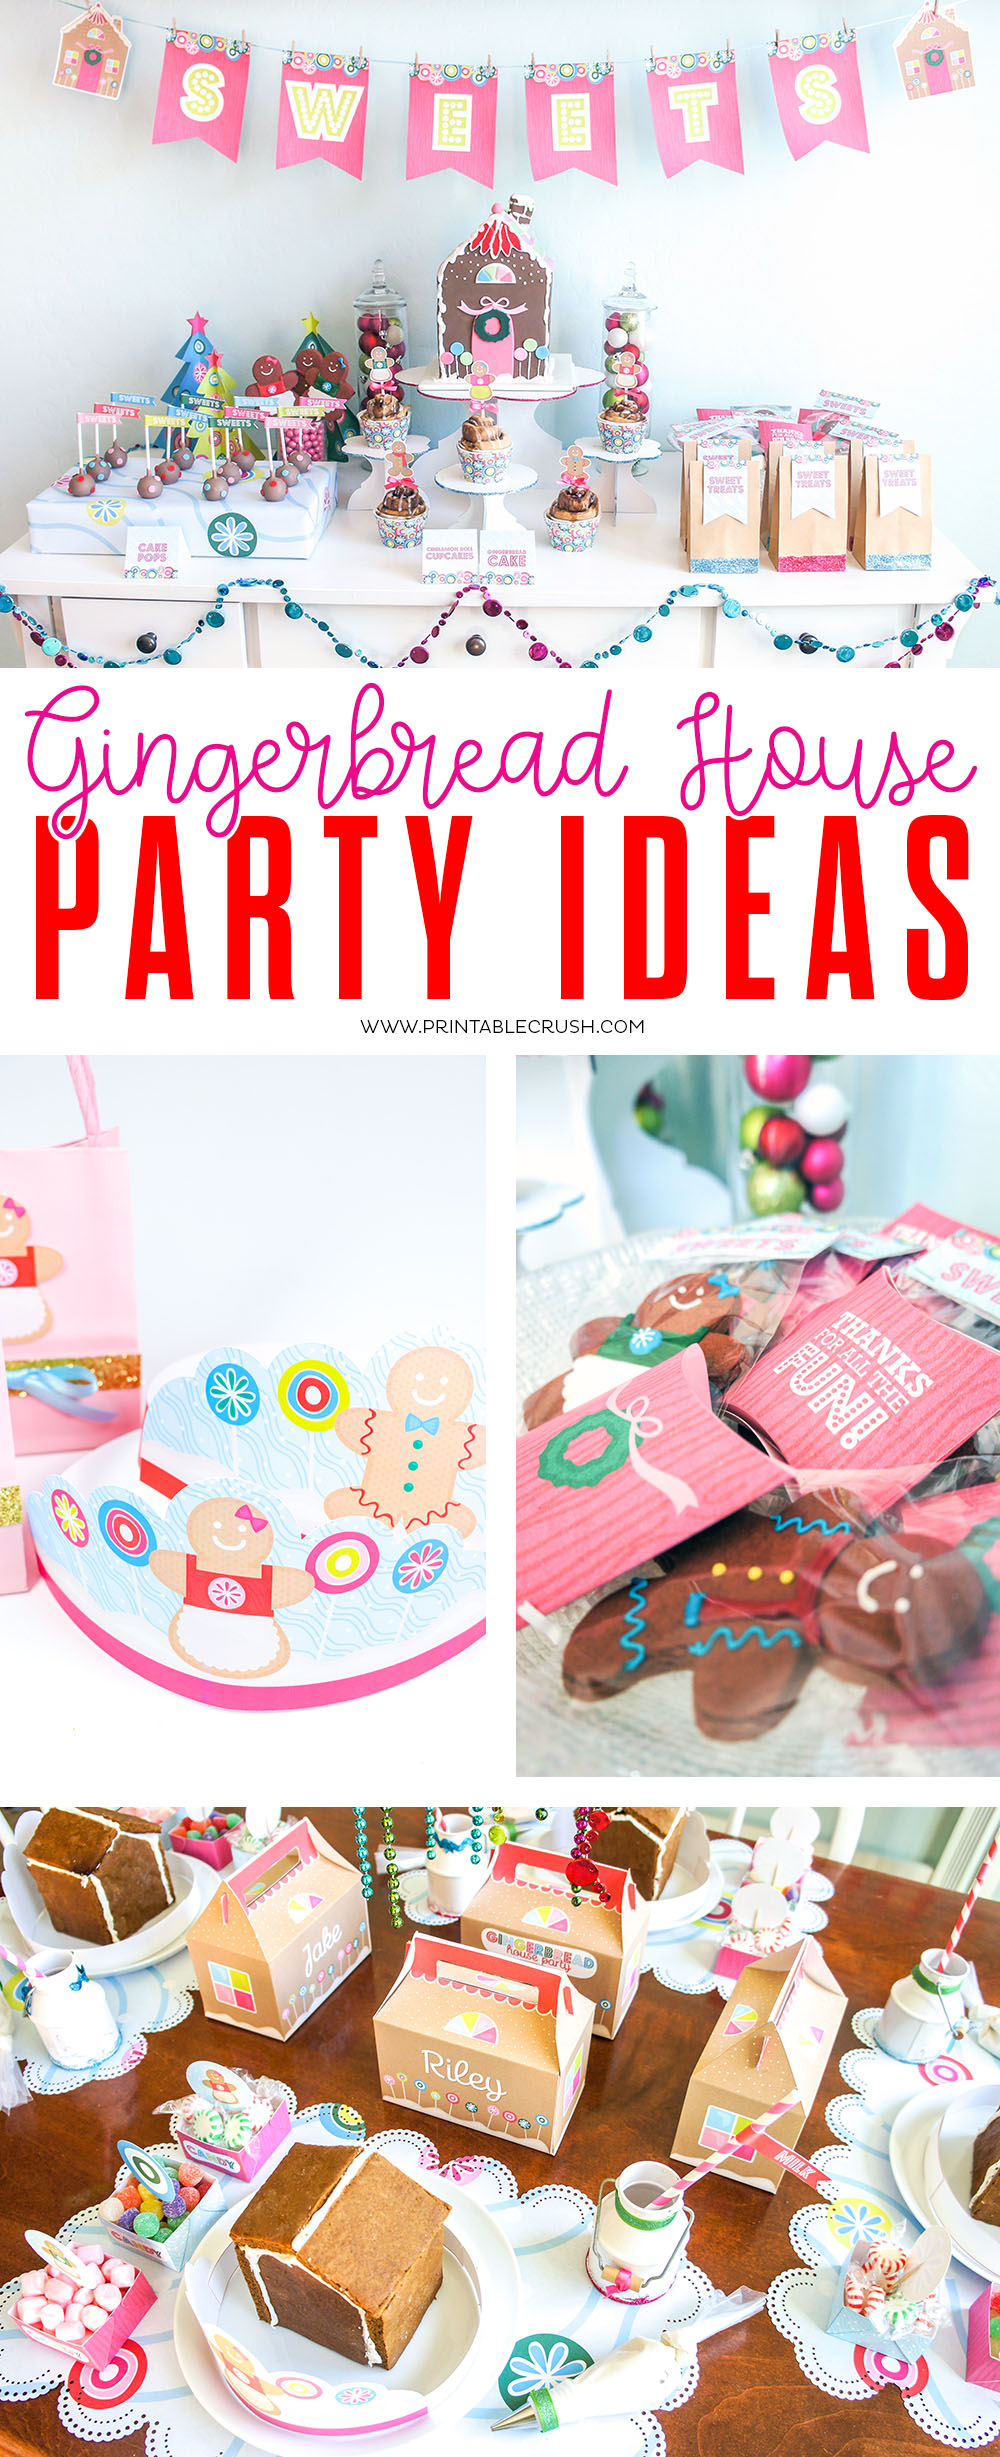 Your kids will love these Gingerbread House Party Ideas - such a fun holiday party!